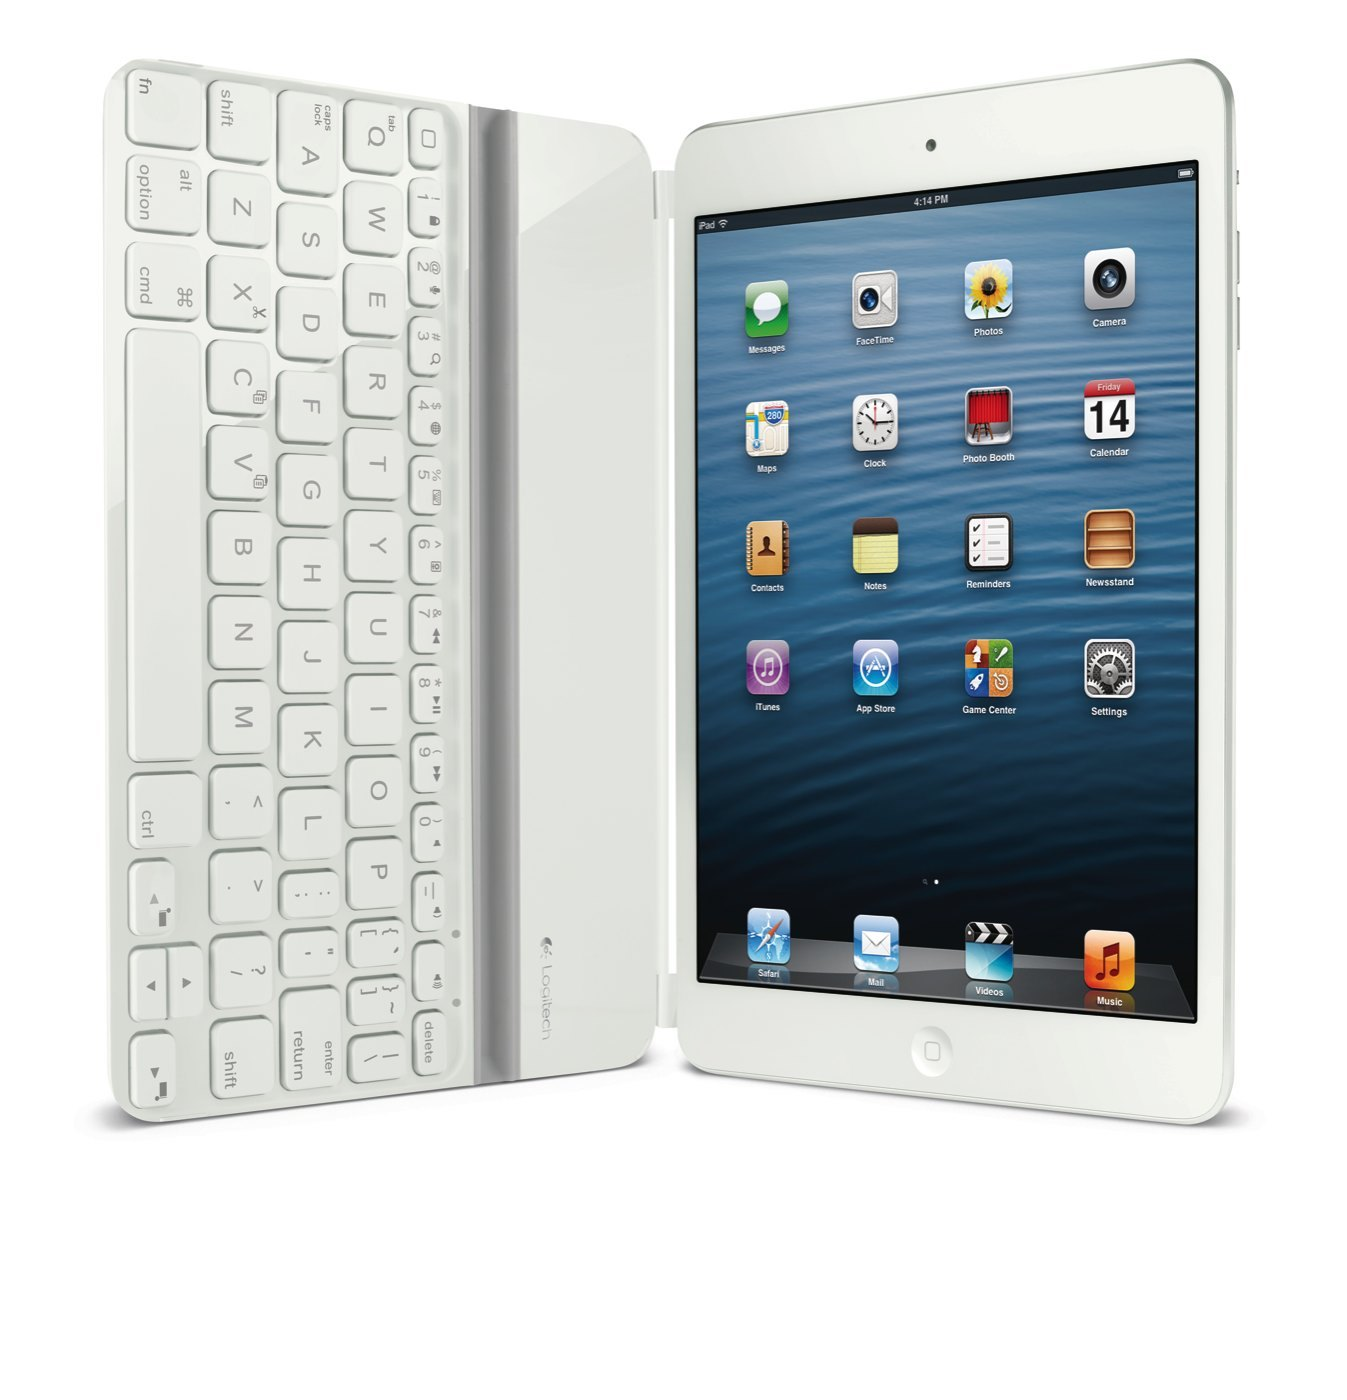 Foto de Logitech Ultrathin Keyboard mini (6/7)